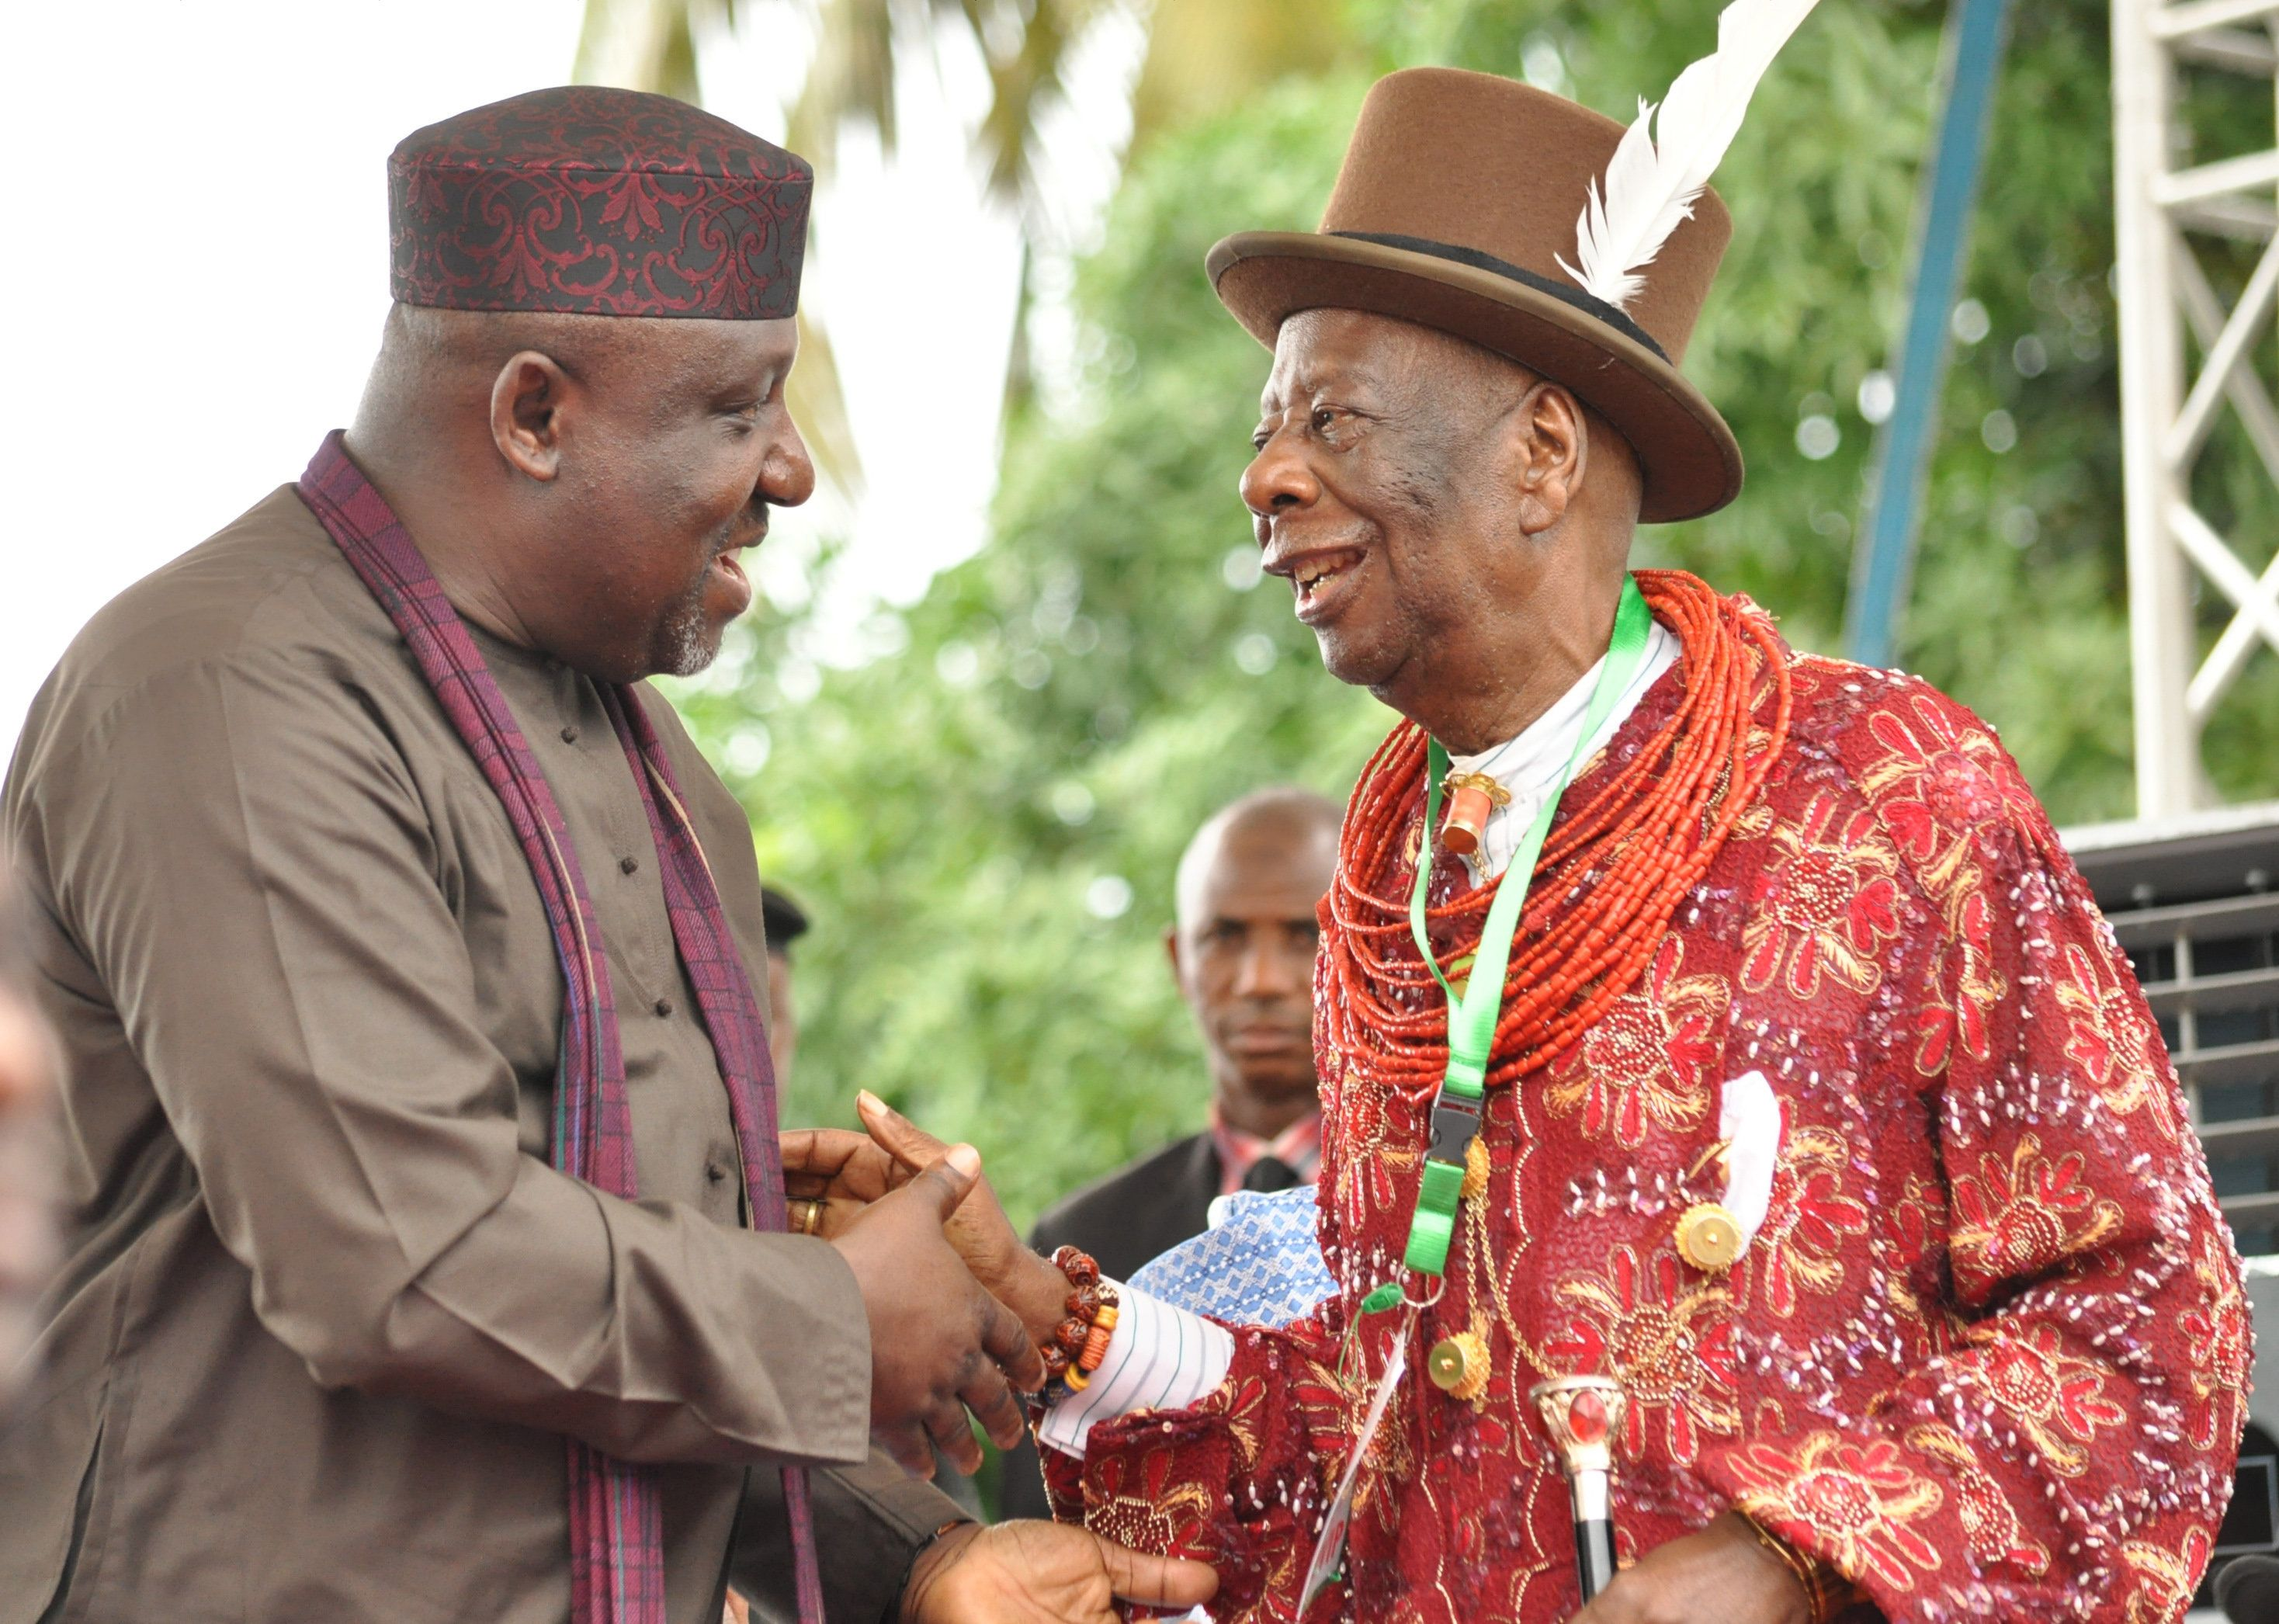 Paramout ruler of Ogoniland King Godwin Gininwa (R) shakes hand with Imo State Governor Rochas Okorocha during the launch of a clean up operation of Ogoniland, on June 2, 2016 in the Ogoniland area of Rivers state in the Niger Delta region. Nigeria's vice-president Yemi Osinbajo launched a $1 billion oil pollution clean-up programme in the Niger delta, after President Muhammadu Buhari pulled out of visiting the restive region. Yemi Osinbajo stood in for Buhari, who had been due to attend the ceremony in the Ogoniland area of Rivers state in what would have been his first visit to the delta as president. / AFP / STRINGER        (Photo credit should read STRINGER/AFP/Getty Images)